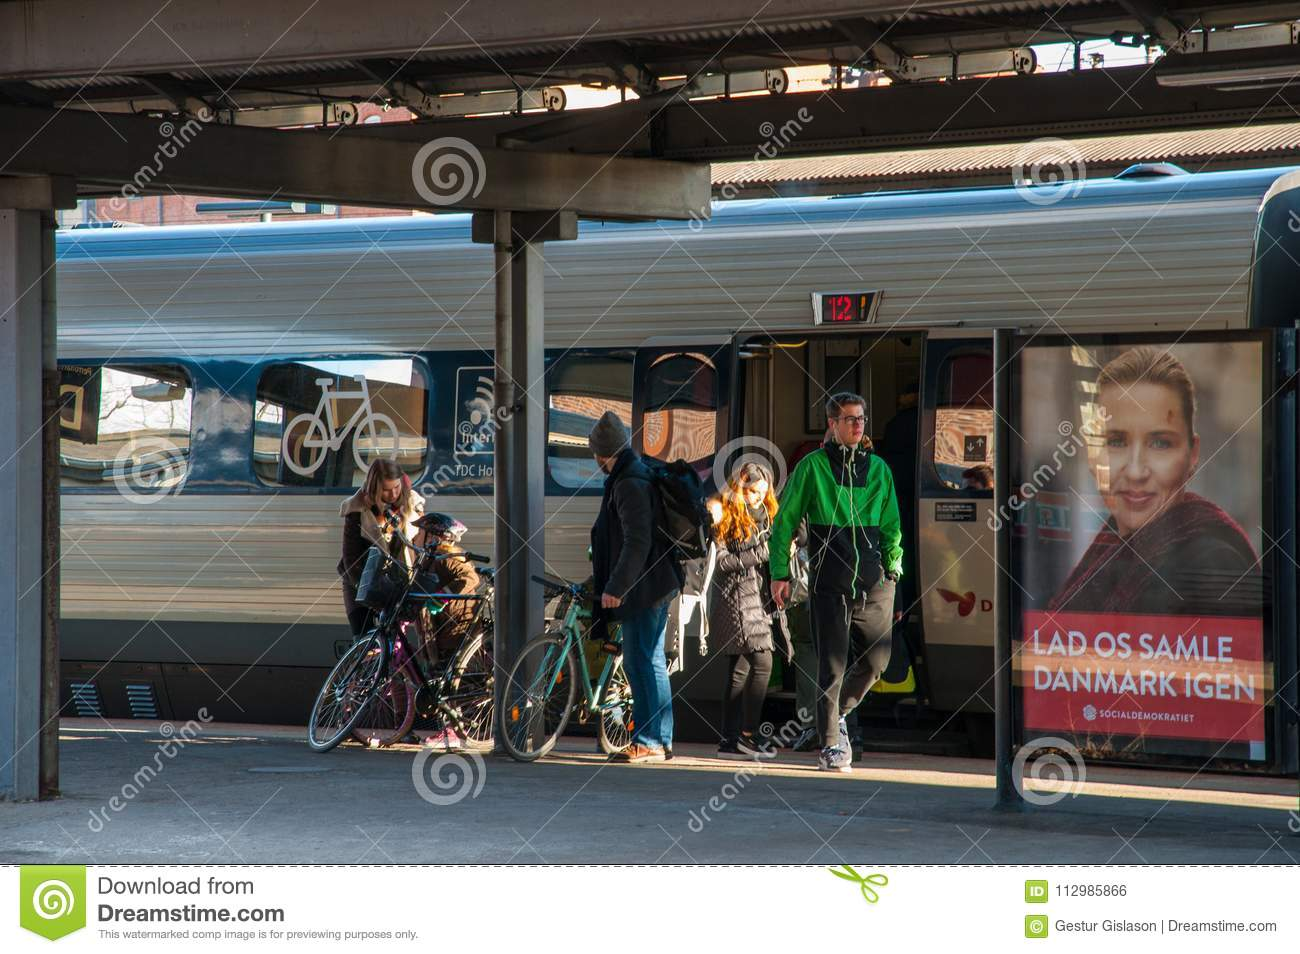 People leaving the train at Roskilde train station in Denmark